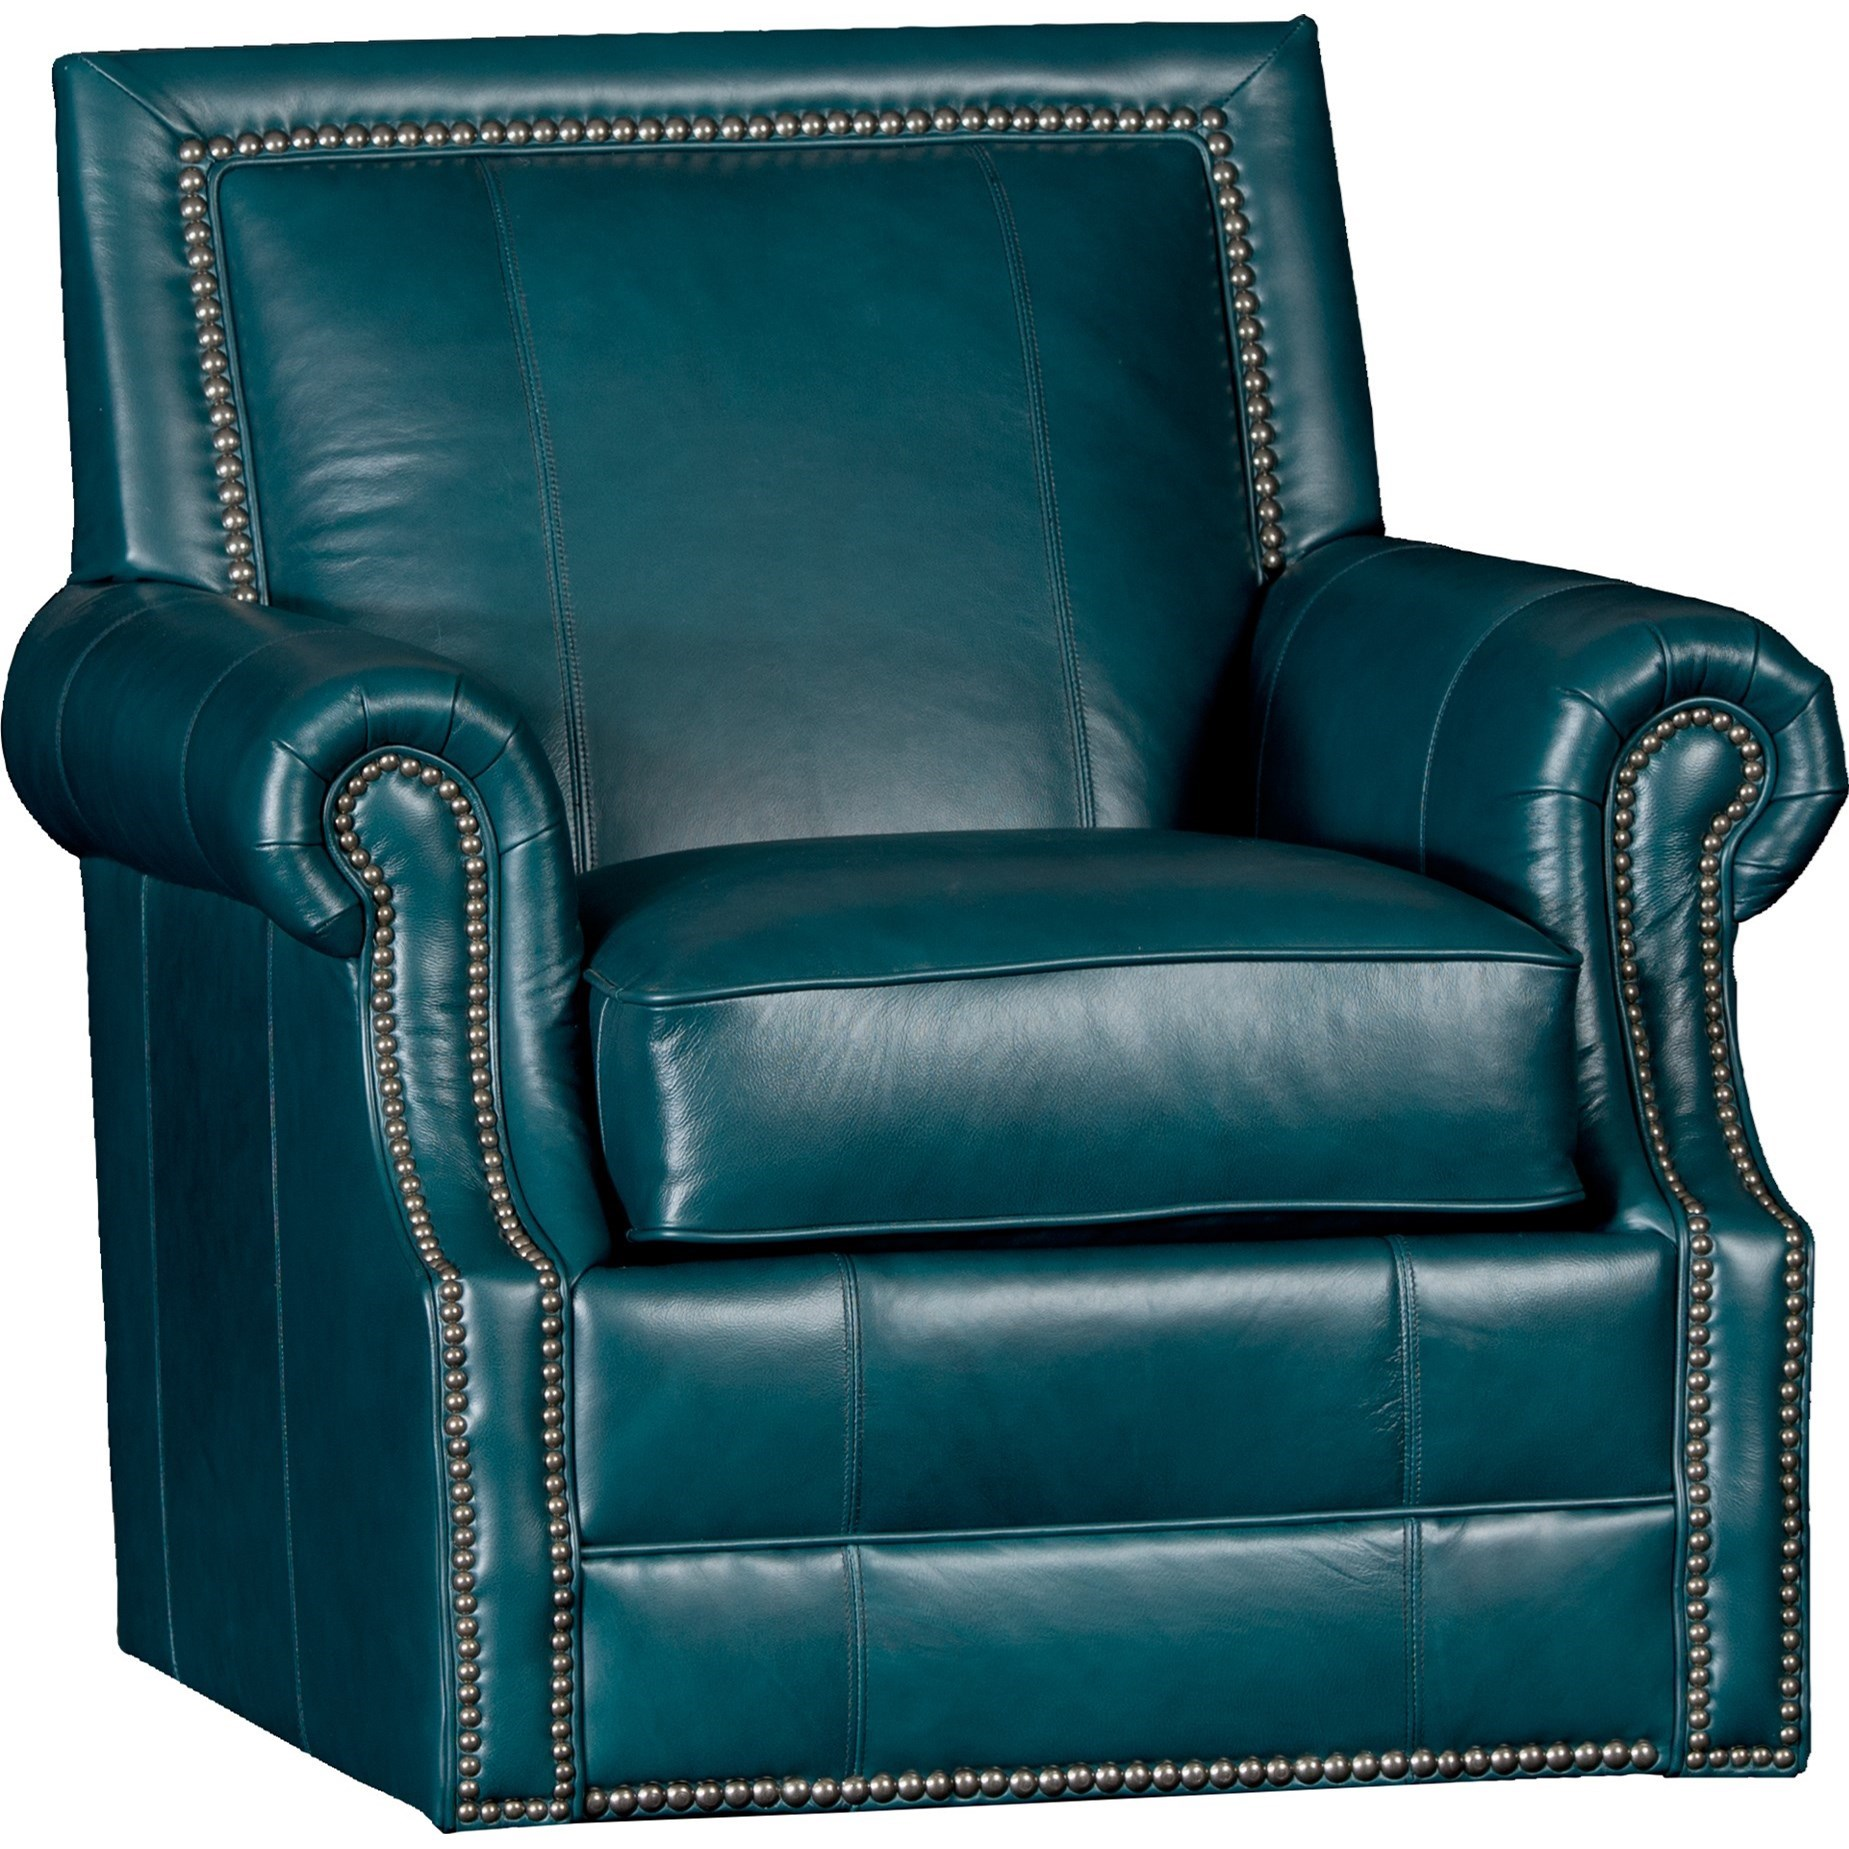 4110 Swivel Chair by Mayo at Wilcox Furniture